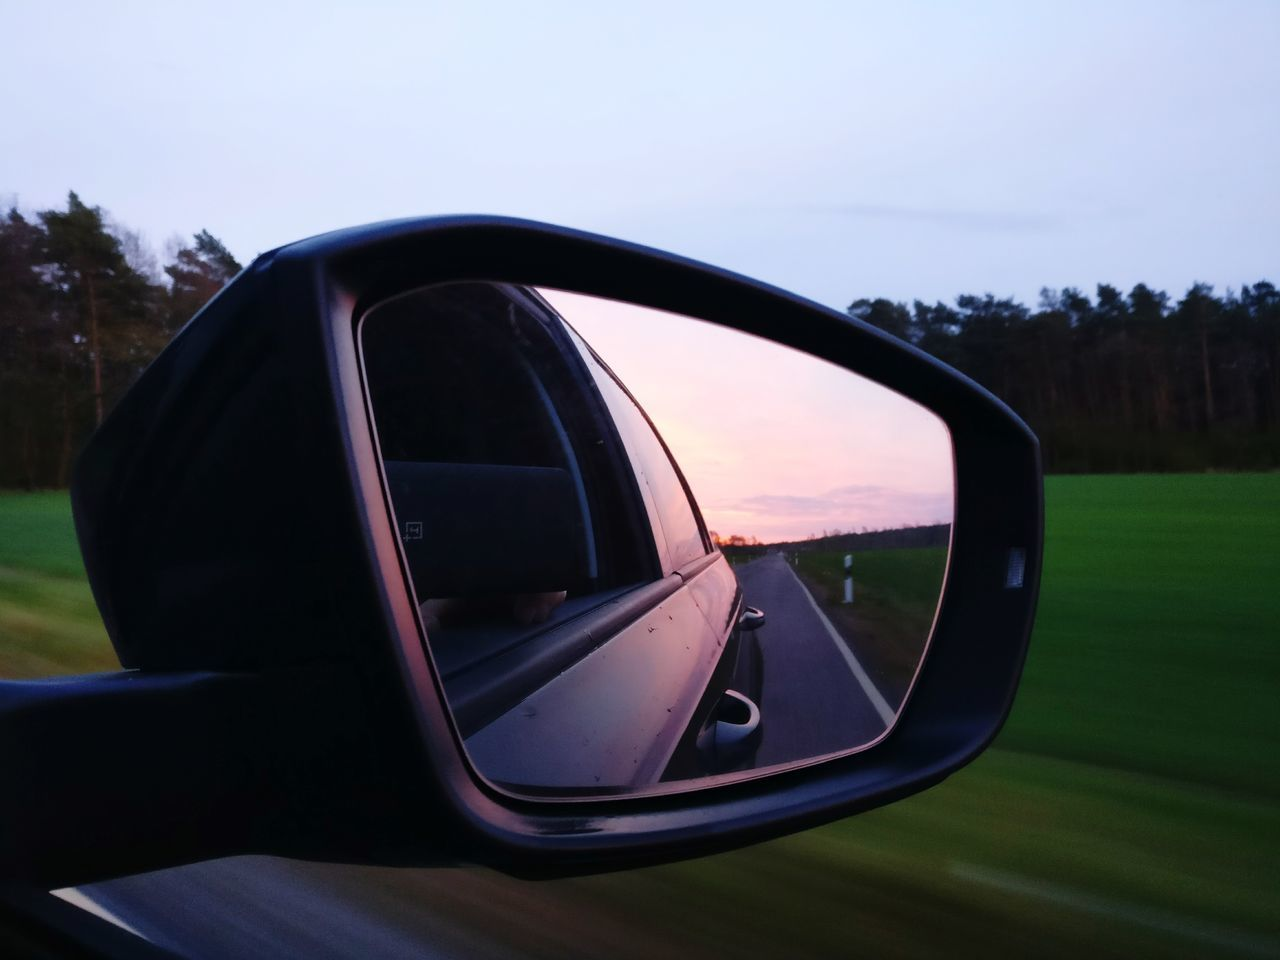 Mirror Car No People Landscape Sunset Outdoors Close-up Day Water Nature Sky